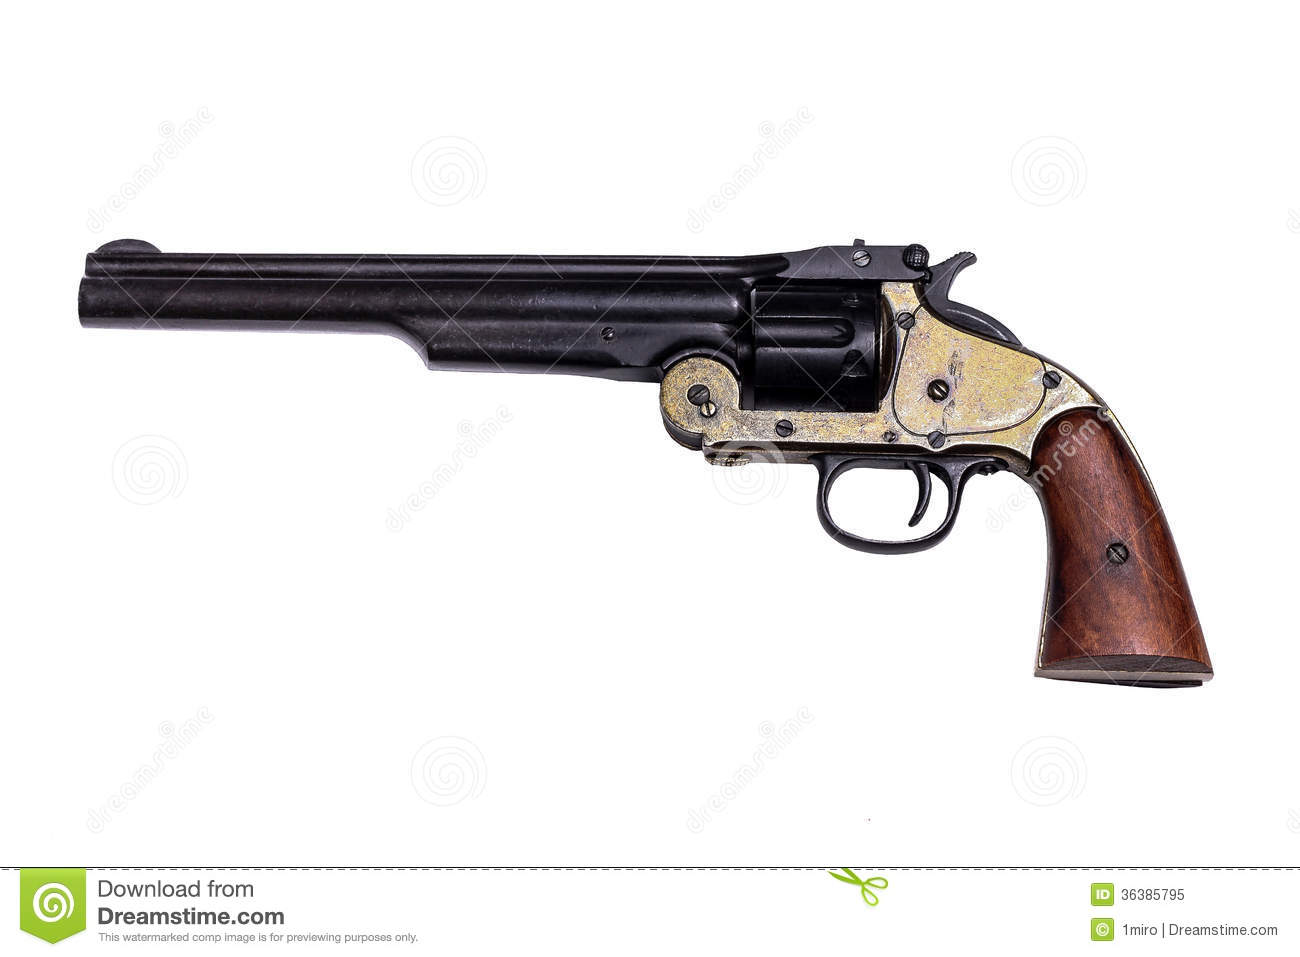 gun white background - photo #17